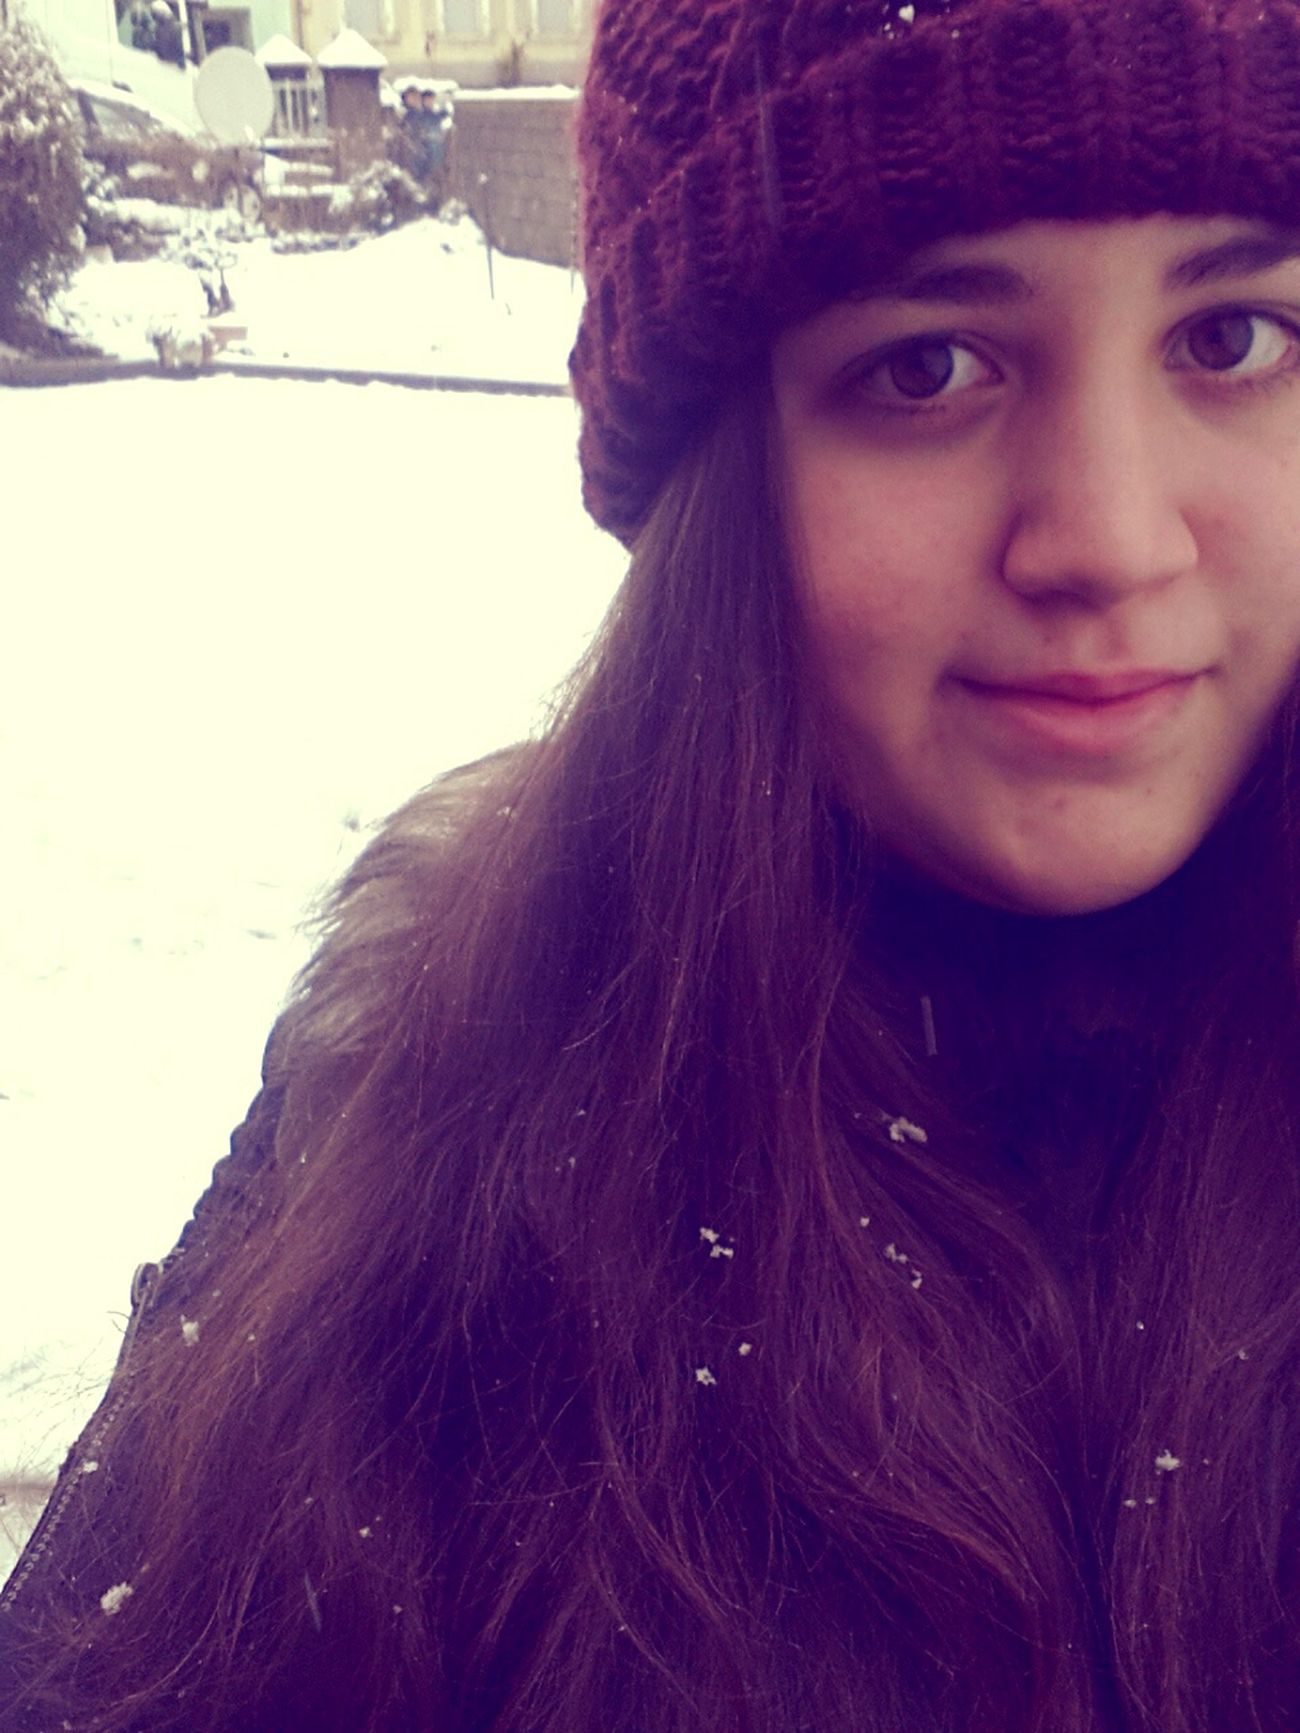 Snow ❄ Snowing Snow Day yeaaah let it snooow ♥♥ Letitsnowletitsnowletitsnow Hi Me ♡♡